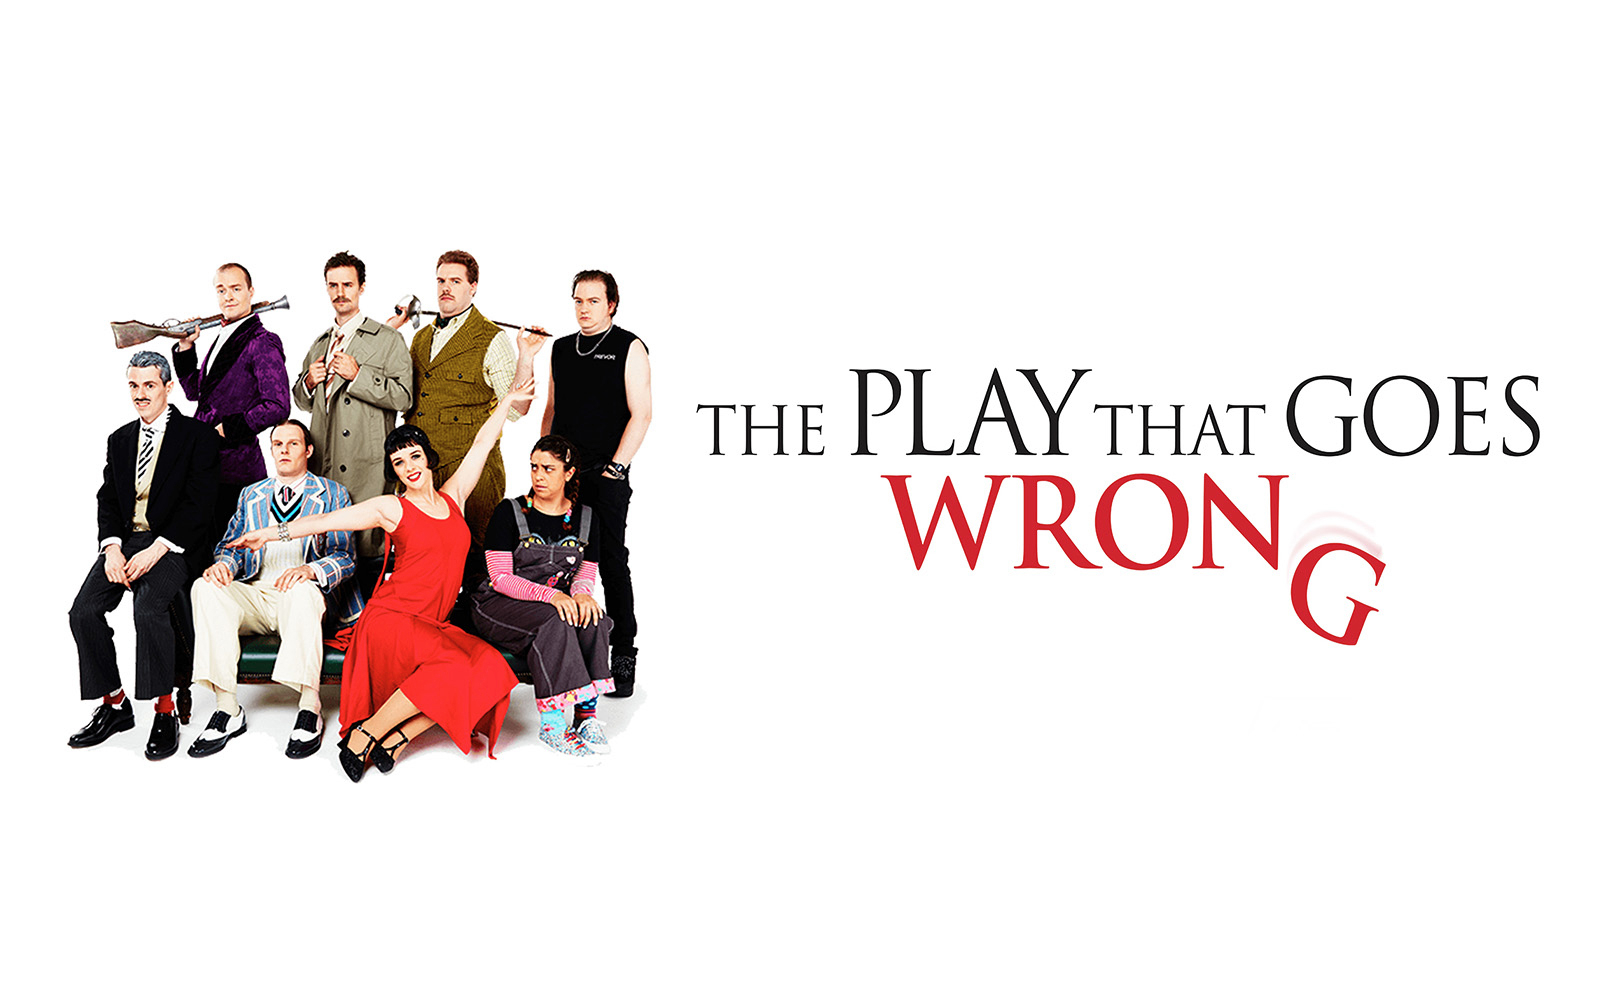 247f77fb e6d0 4a4f a8a3 00f832e226fb 3032 london the play that goes wrong 01